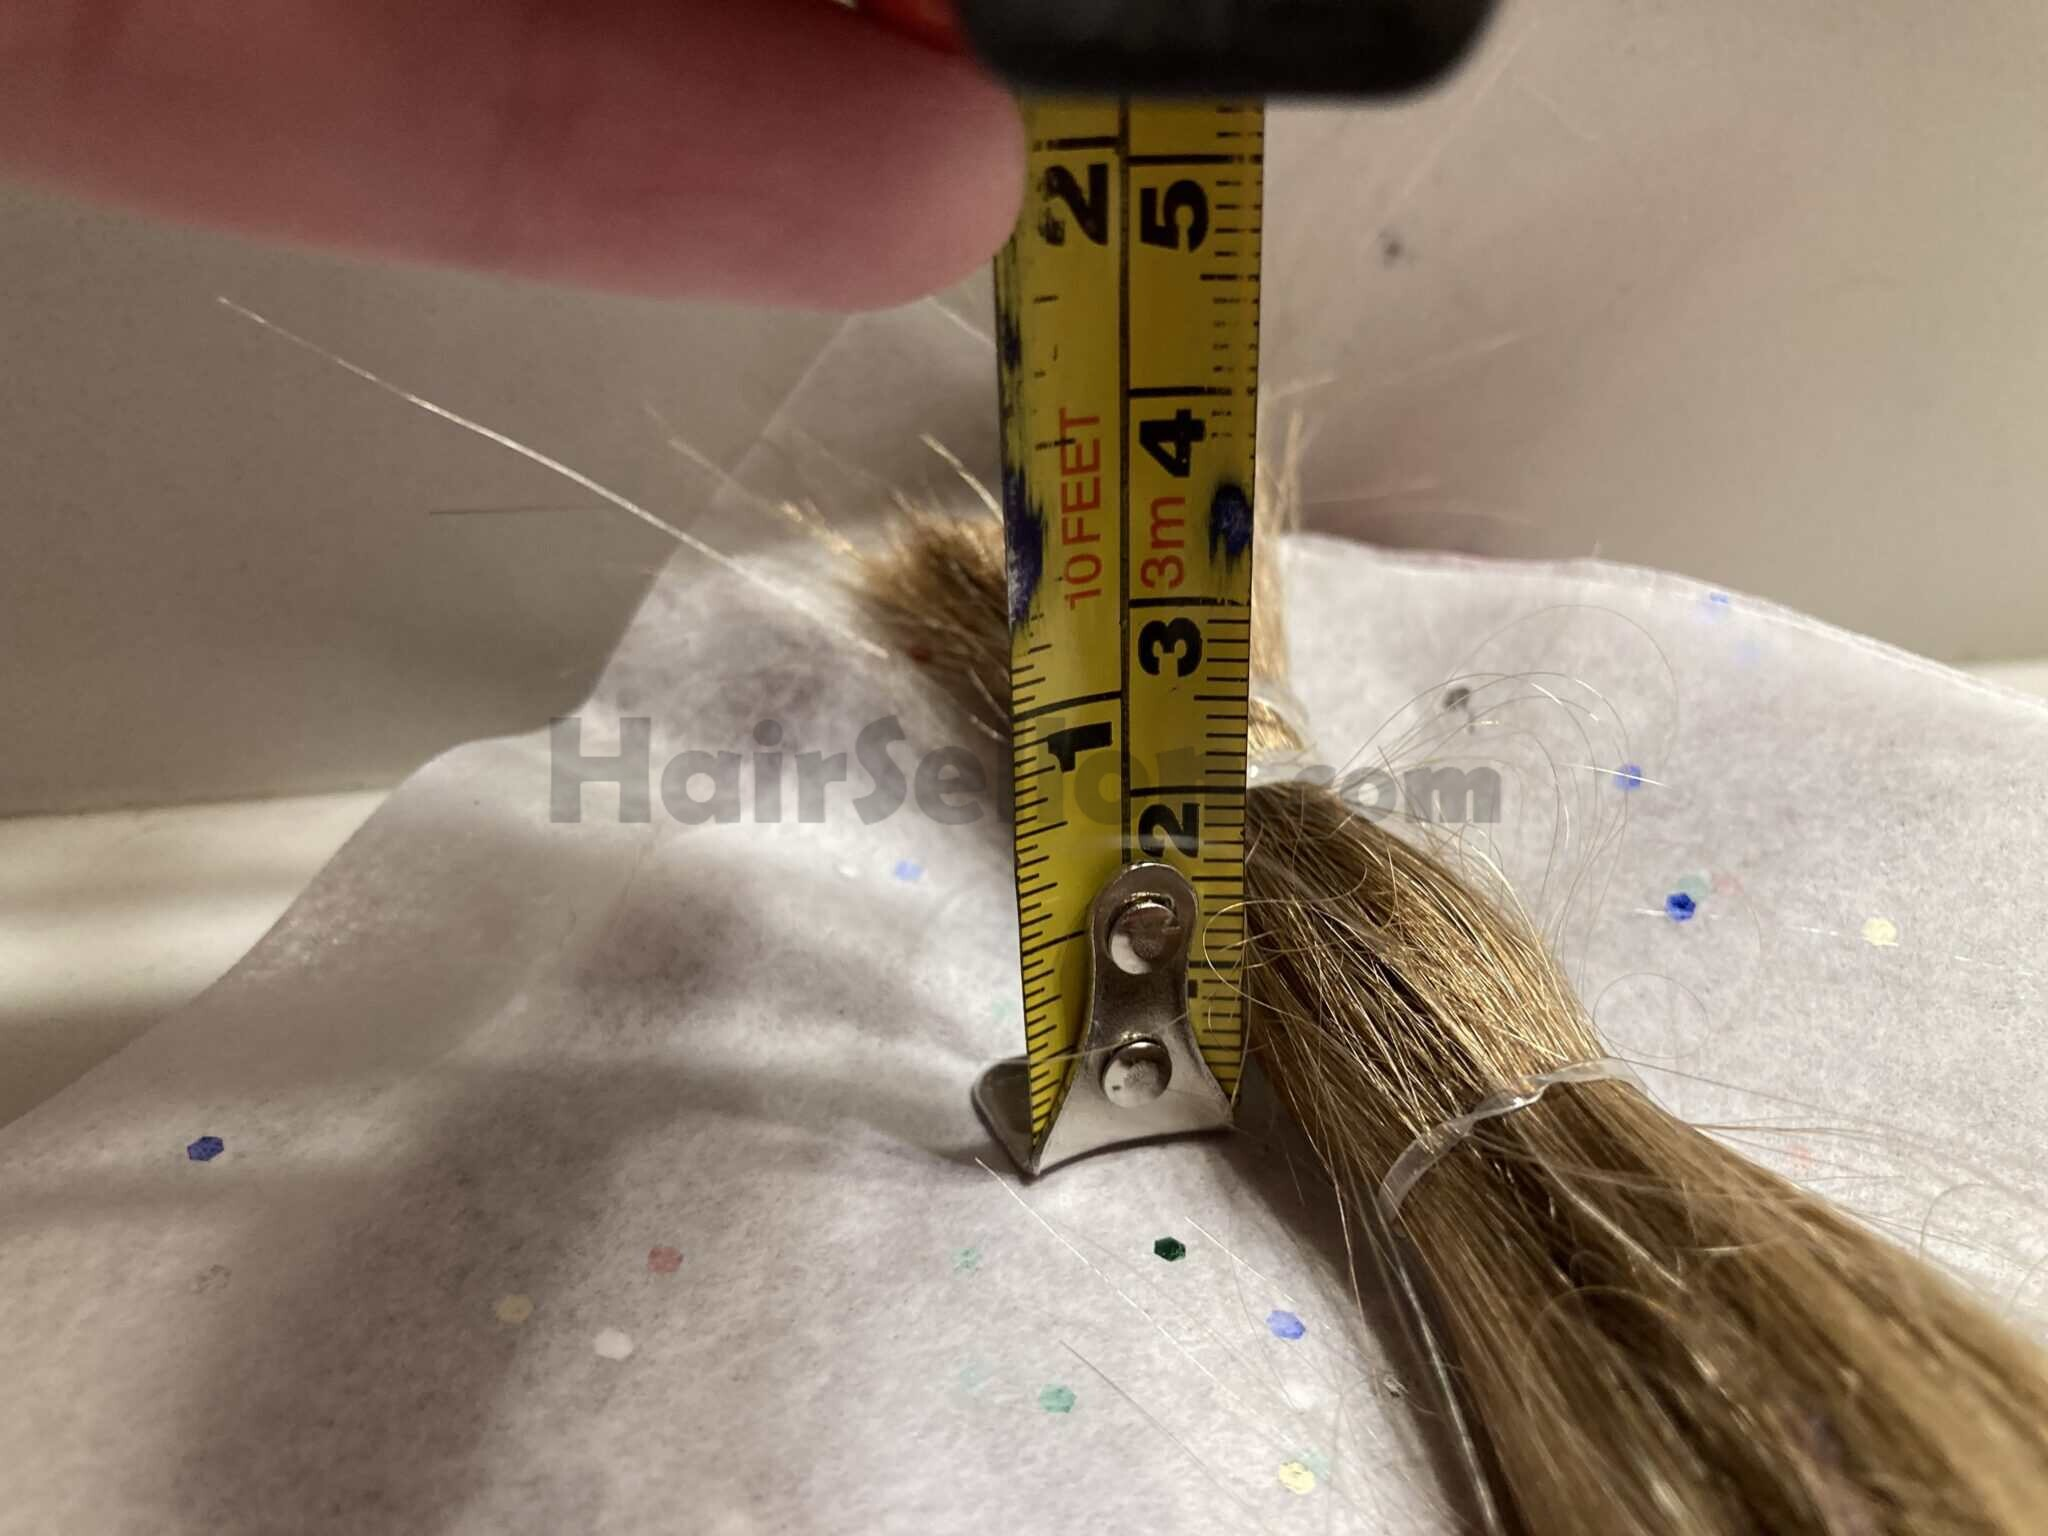 Angle 2 of thickness 1.5 inches